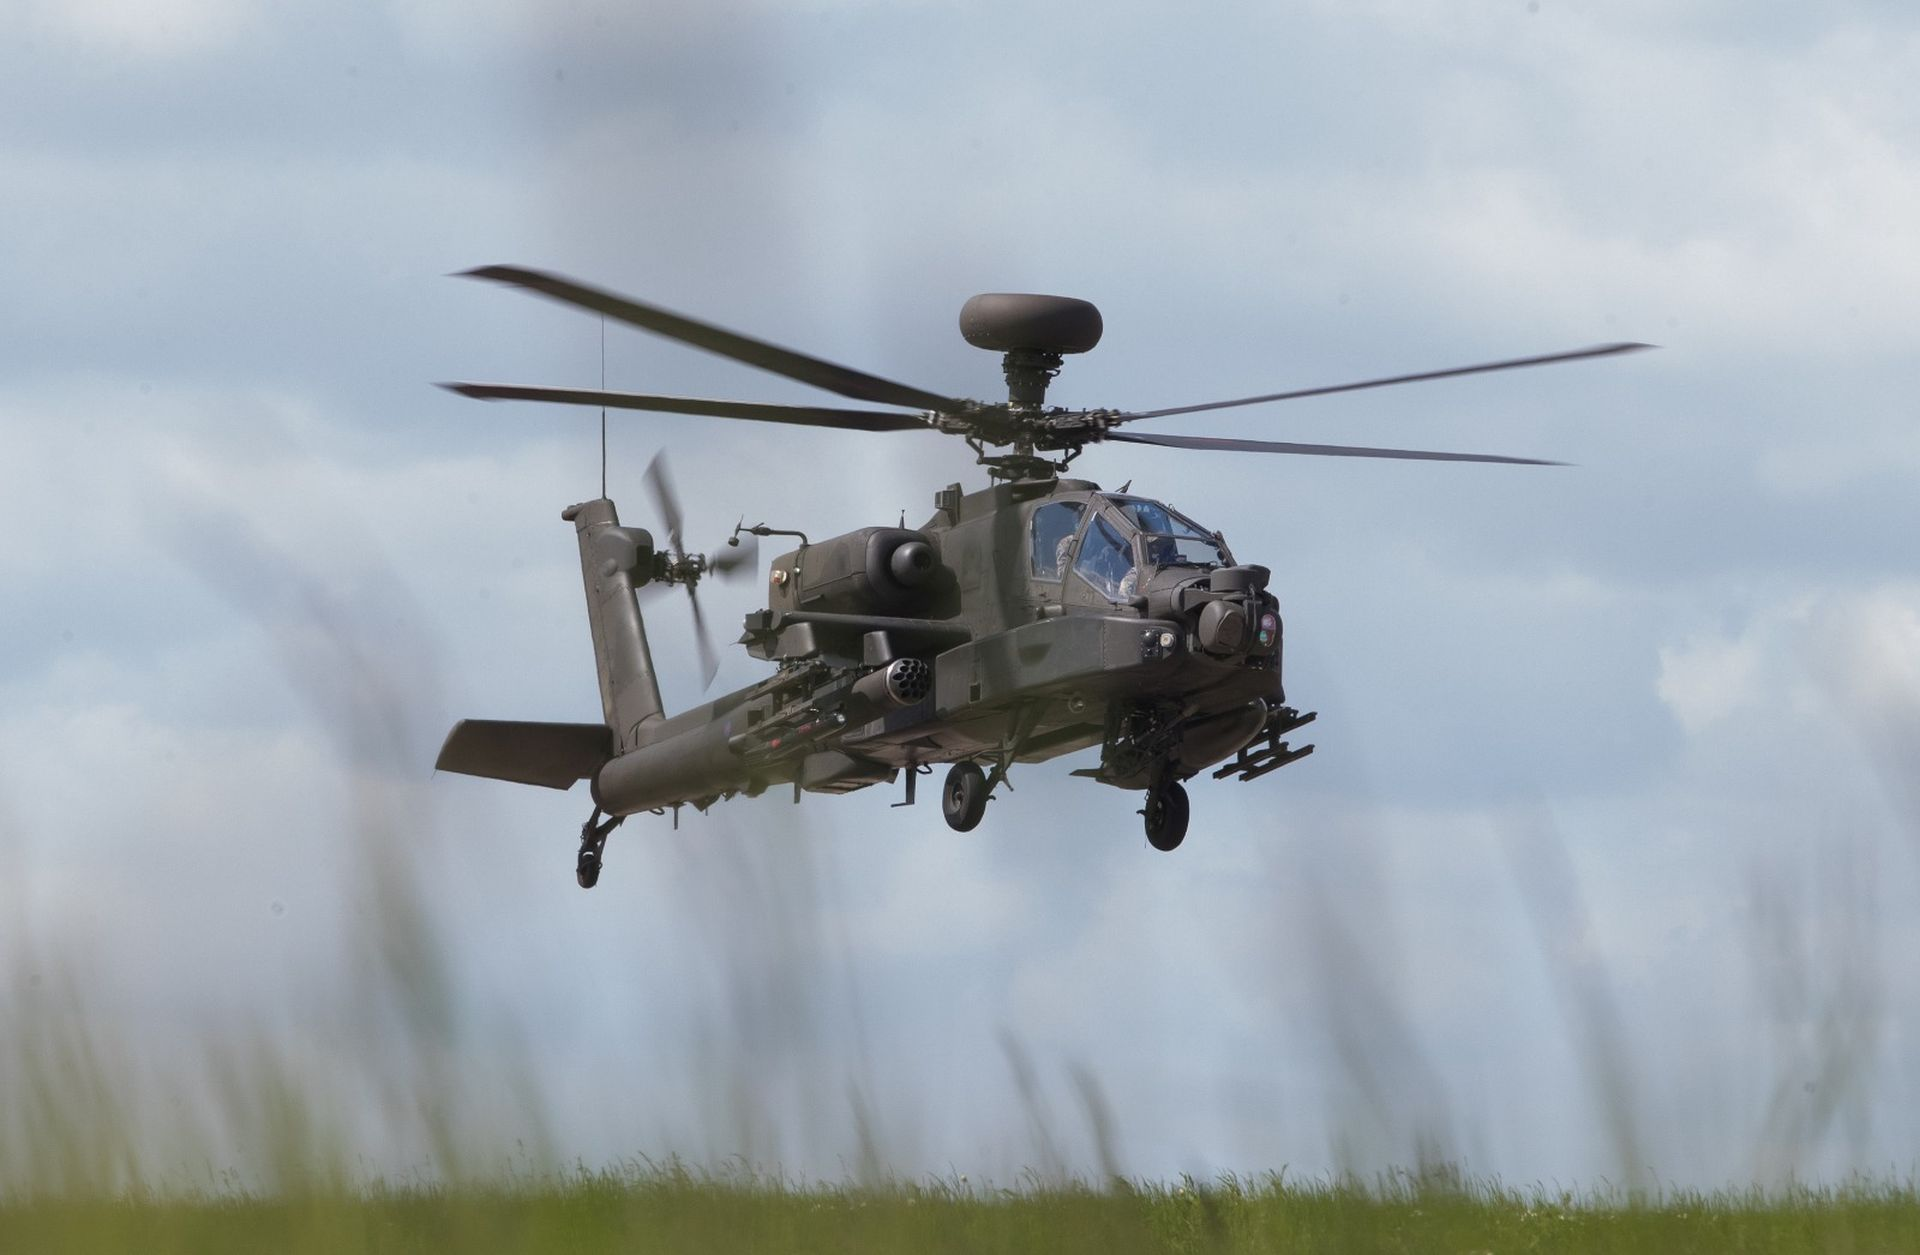 Egypt Requests to Refurbish AH-64E Apache Attack Helicopters ...